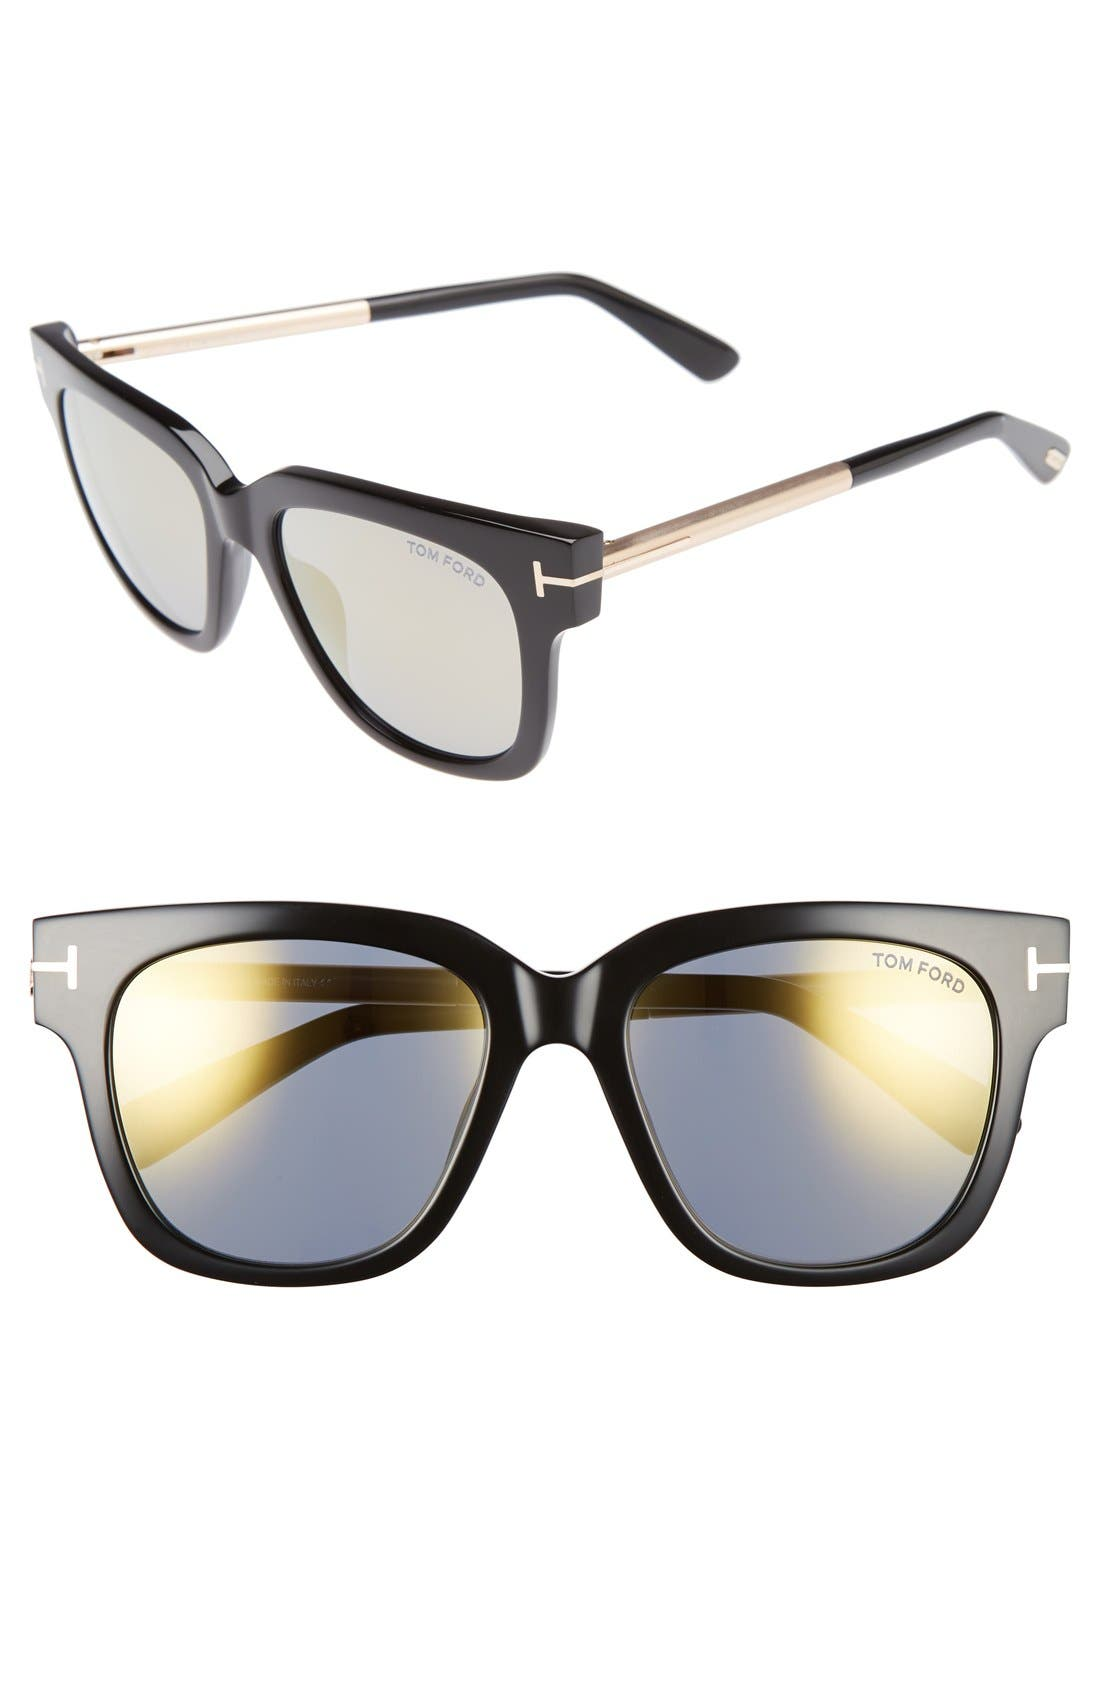 TOM FORD,                             'Tracy' 53mm Retro Sunglasses,                             Main thumbnail 1, color,                             001